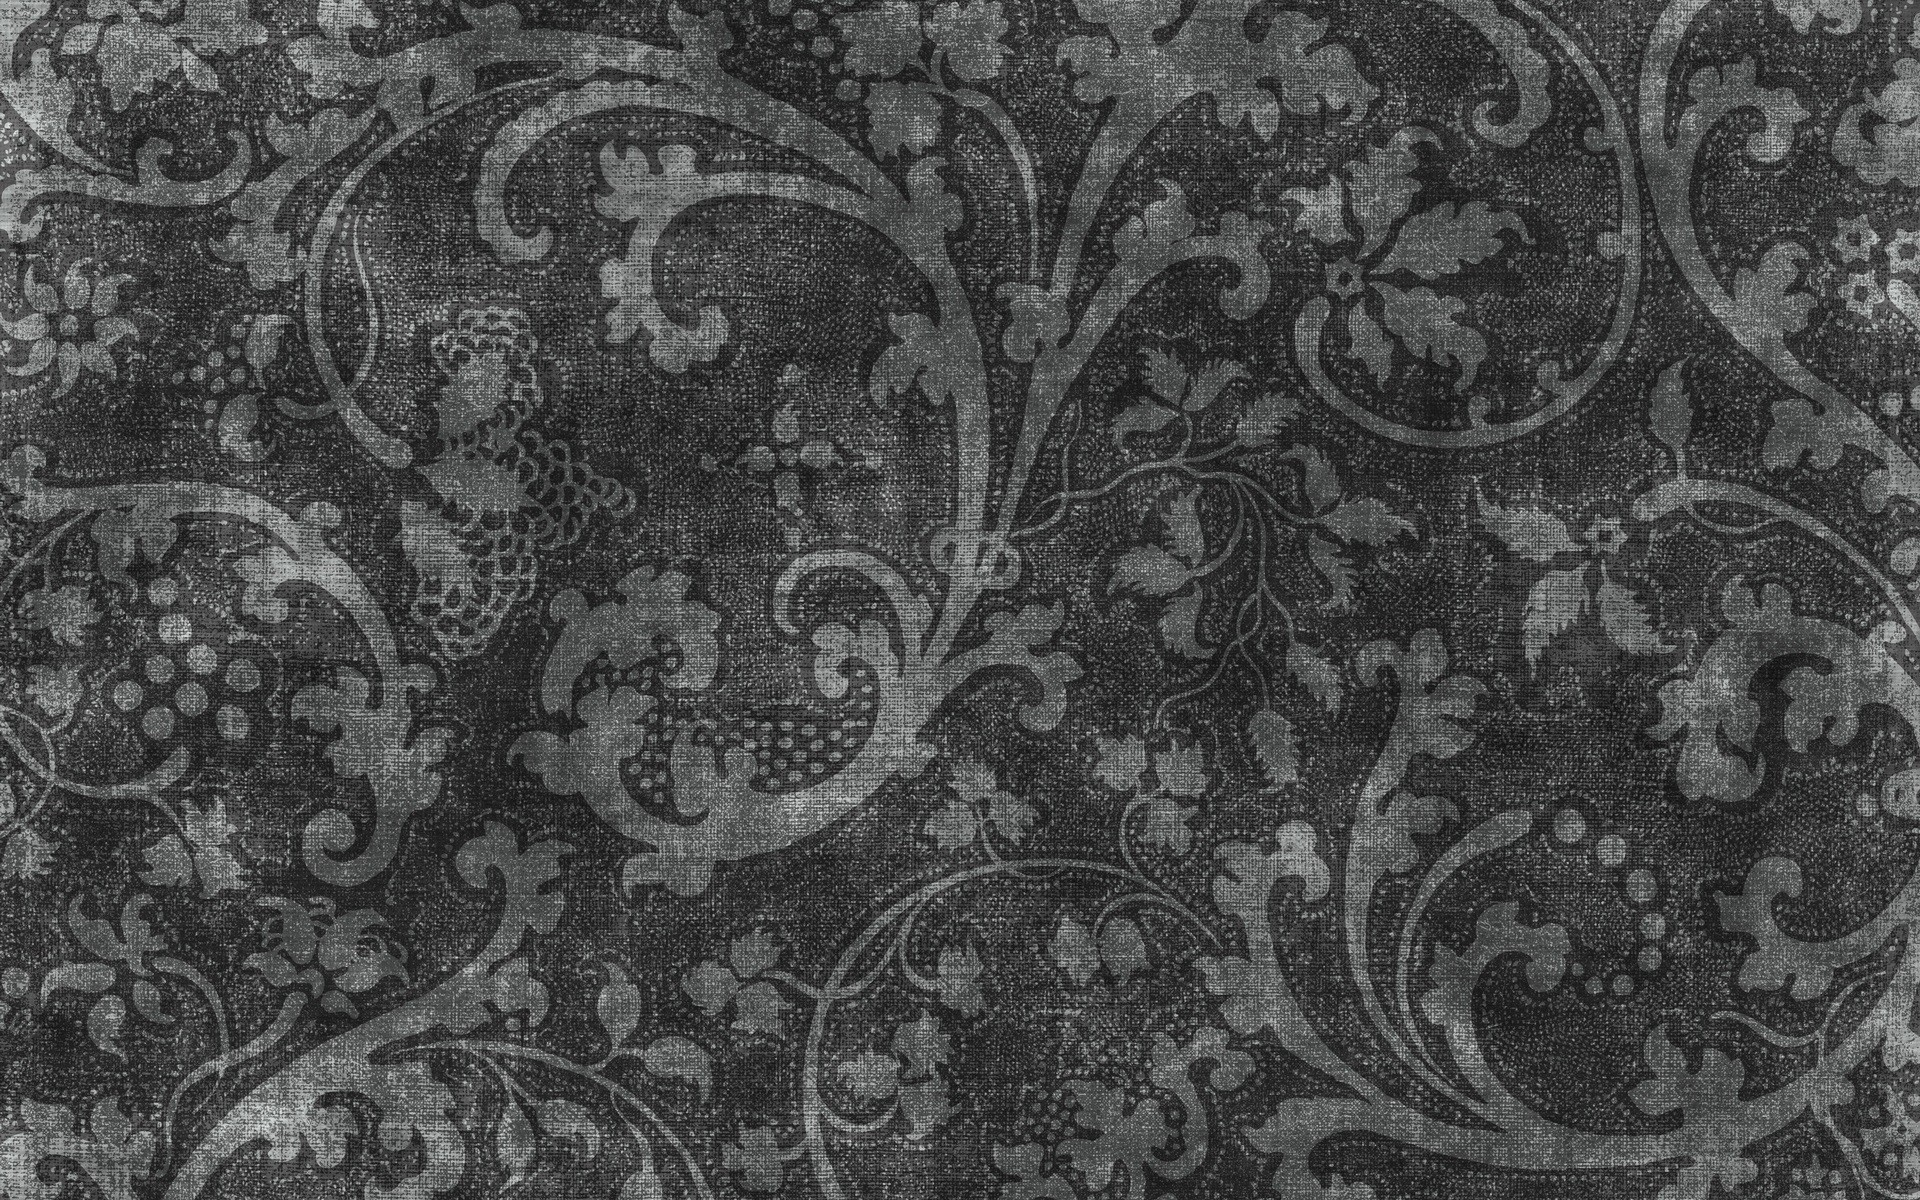 Floral patterned texture photo